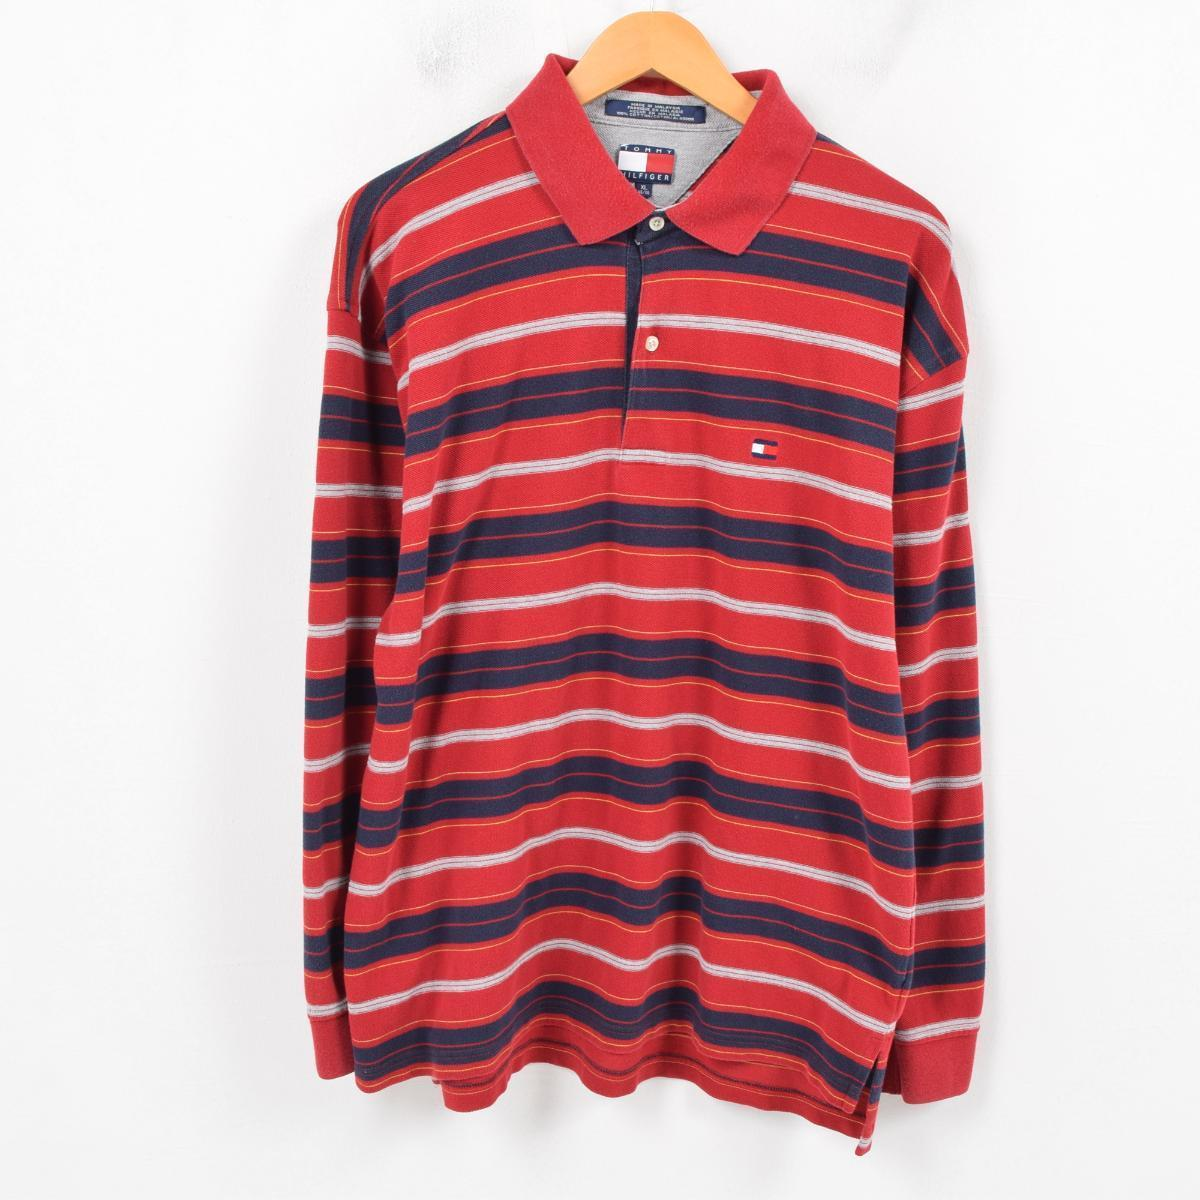 f3af3312 90s トミーヒルフィガー TOMMY HILFIGER long sleeves horizontal stripe polo shirt men  XL /wap7648 ...